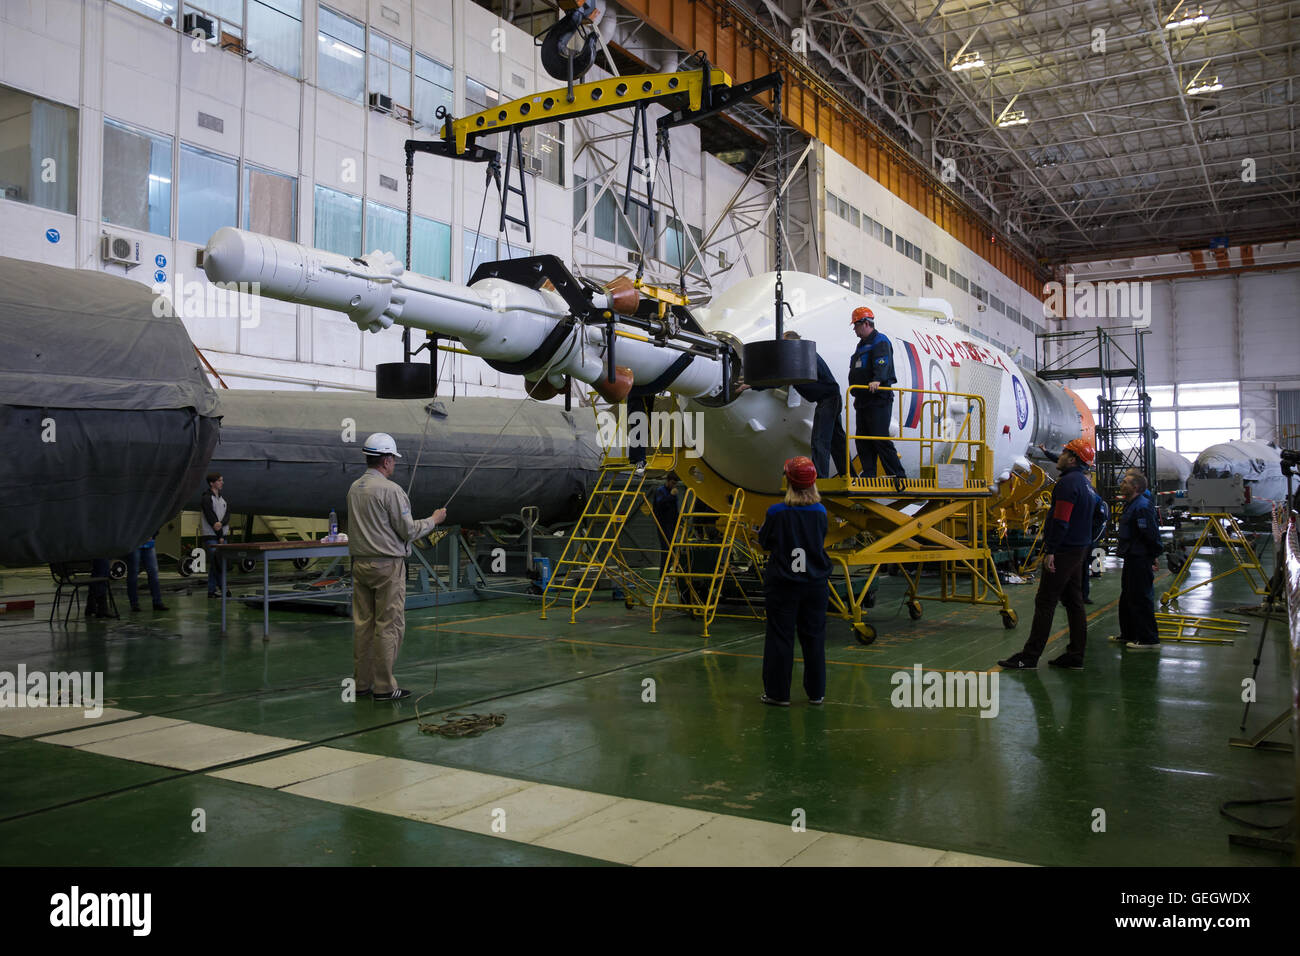 Expedition 47 Soyuz Final Assembly  03150002 - Stock Image